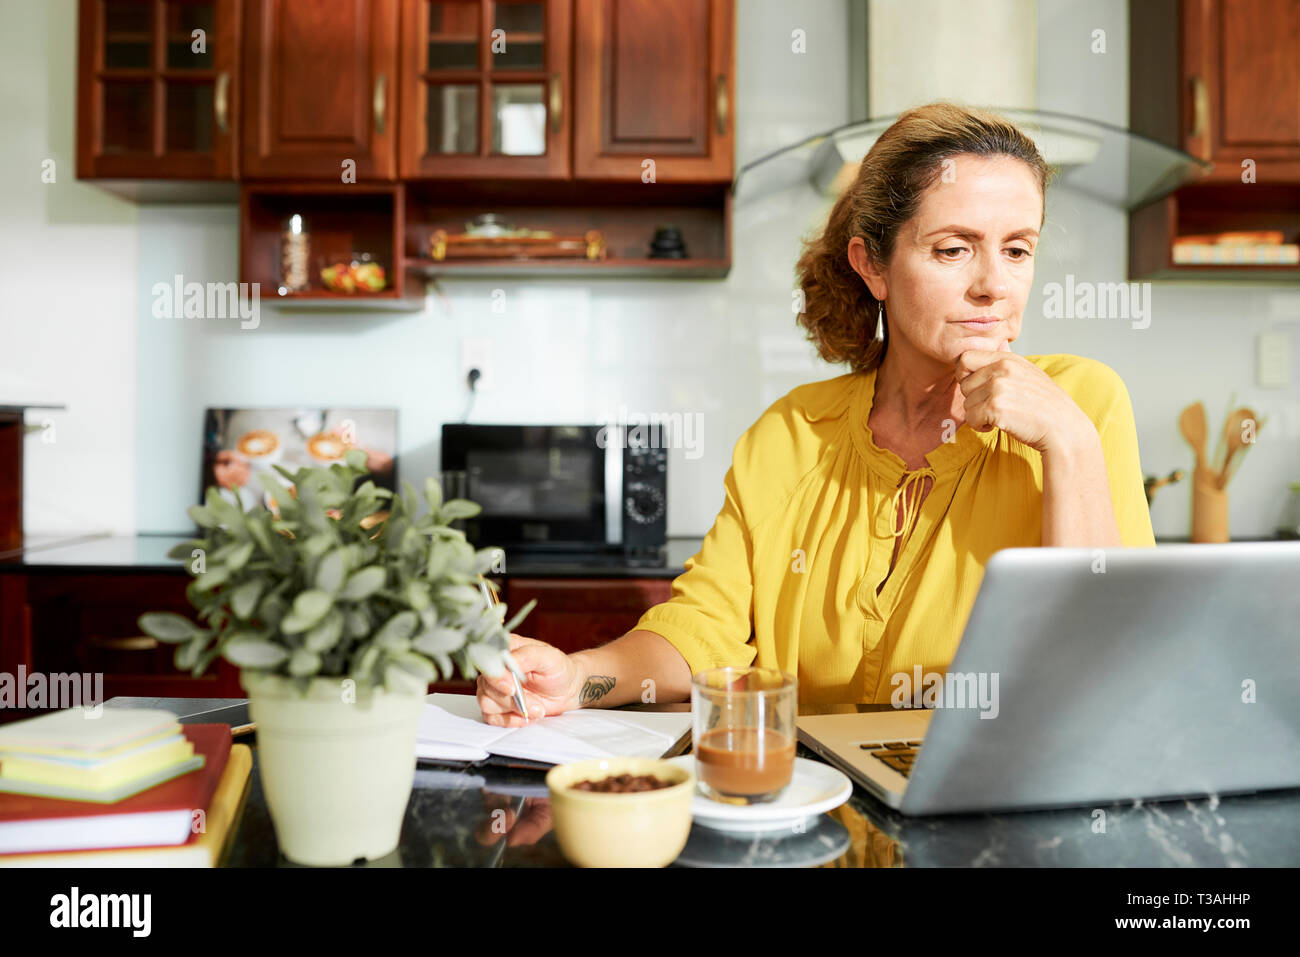 Mature housewife working on laptop - Stock Image